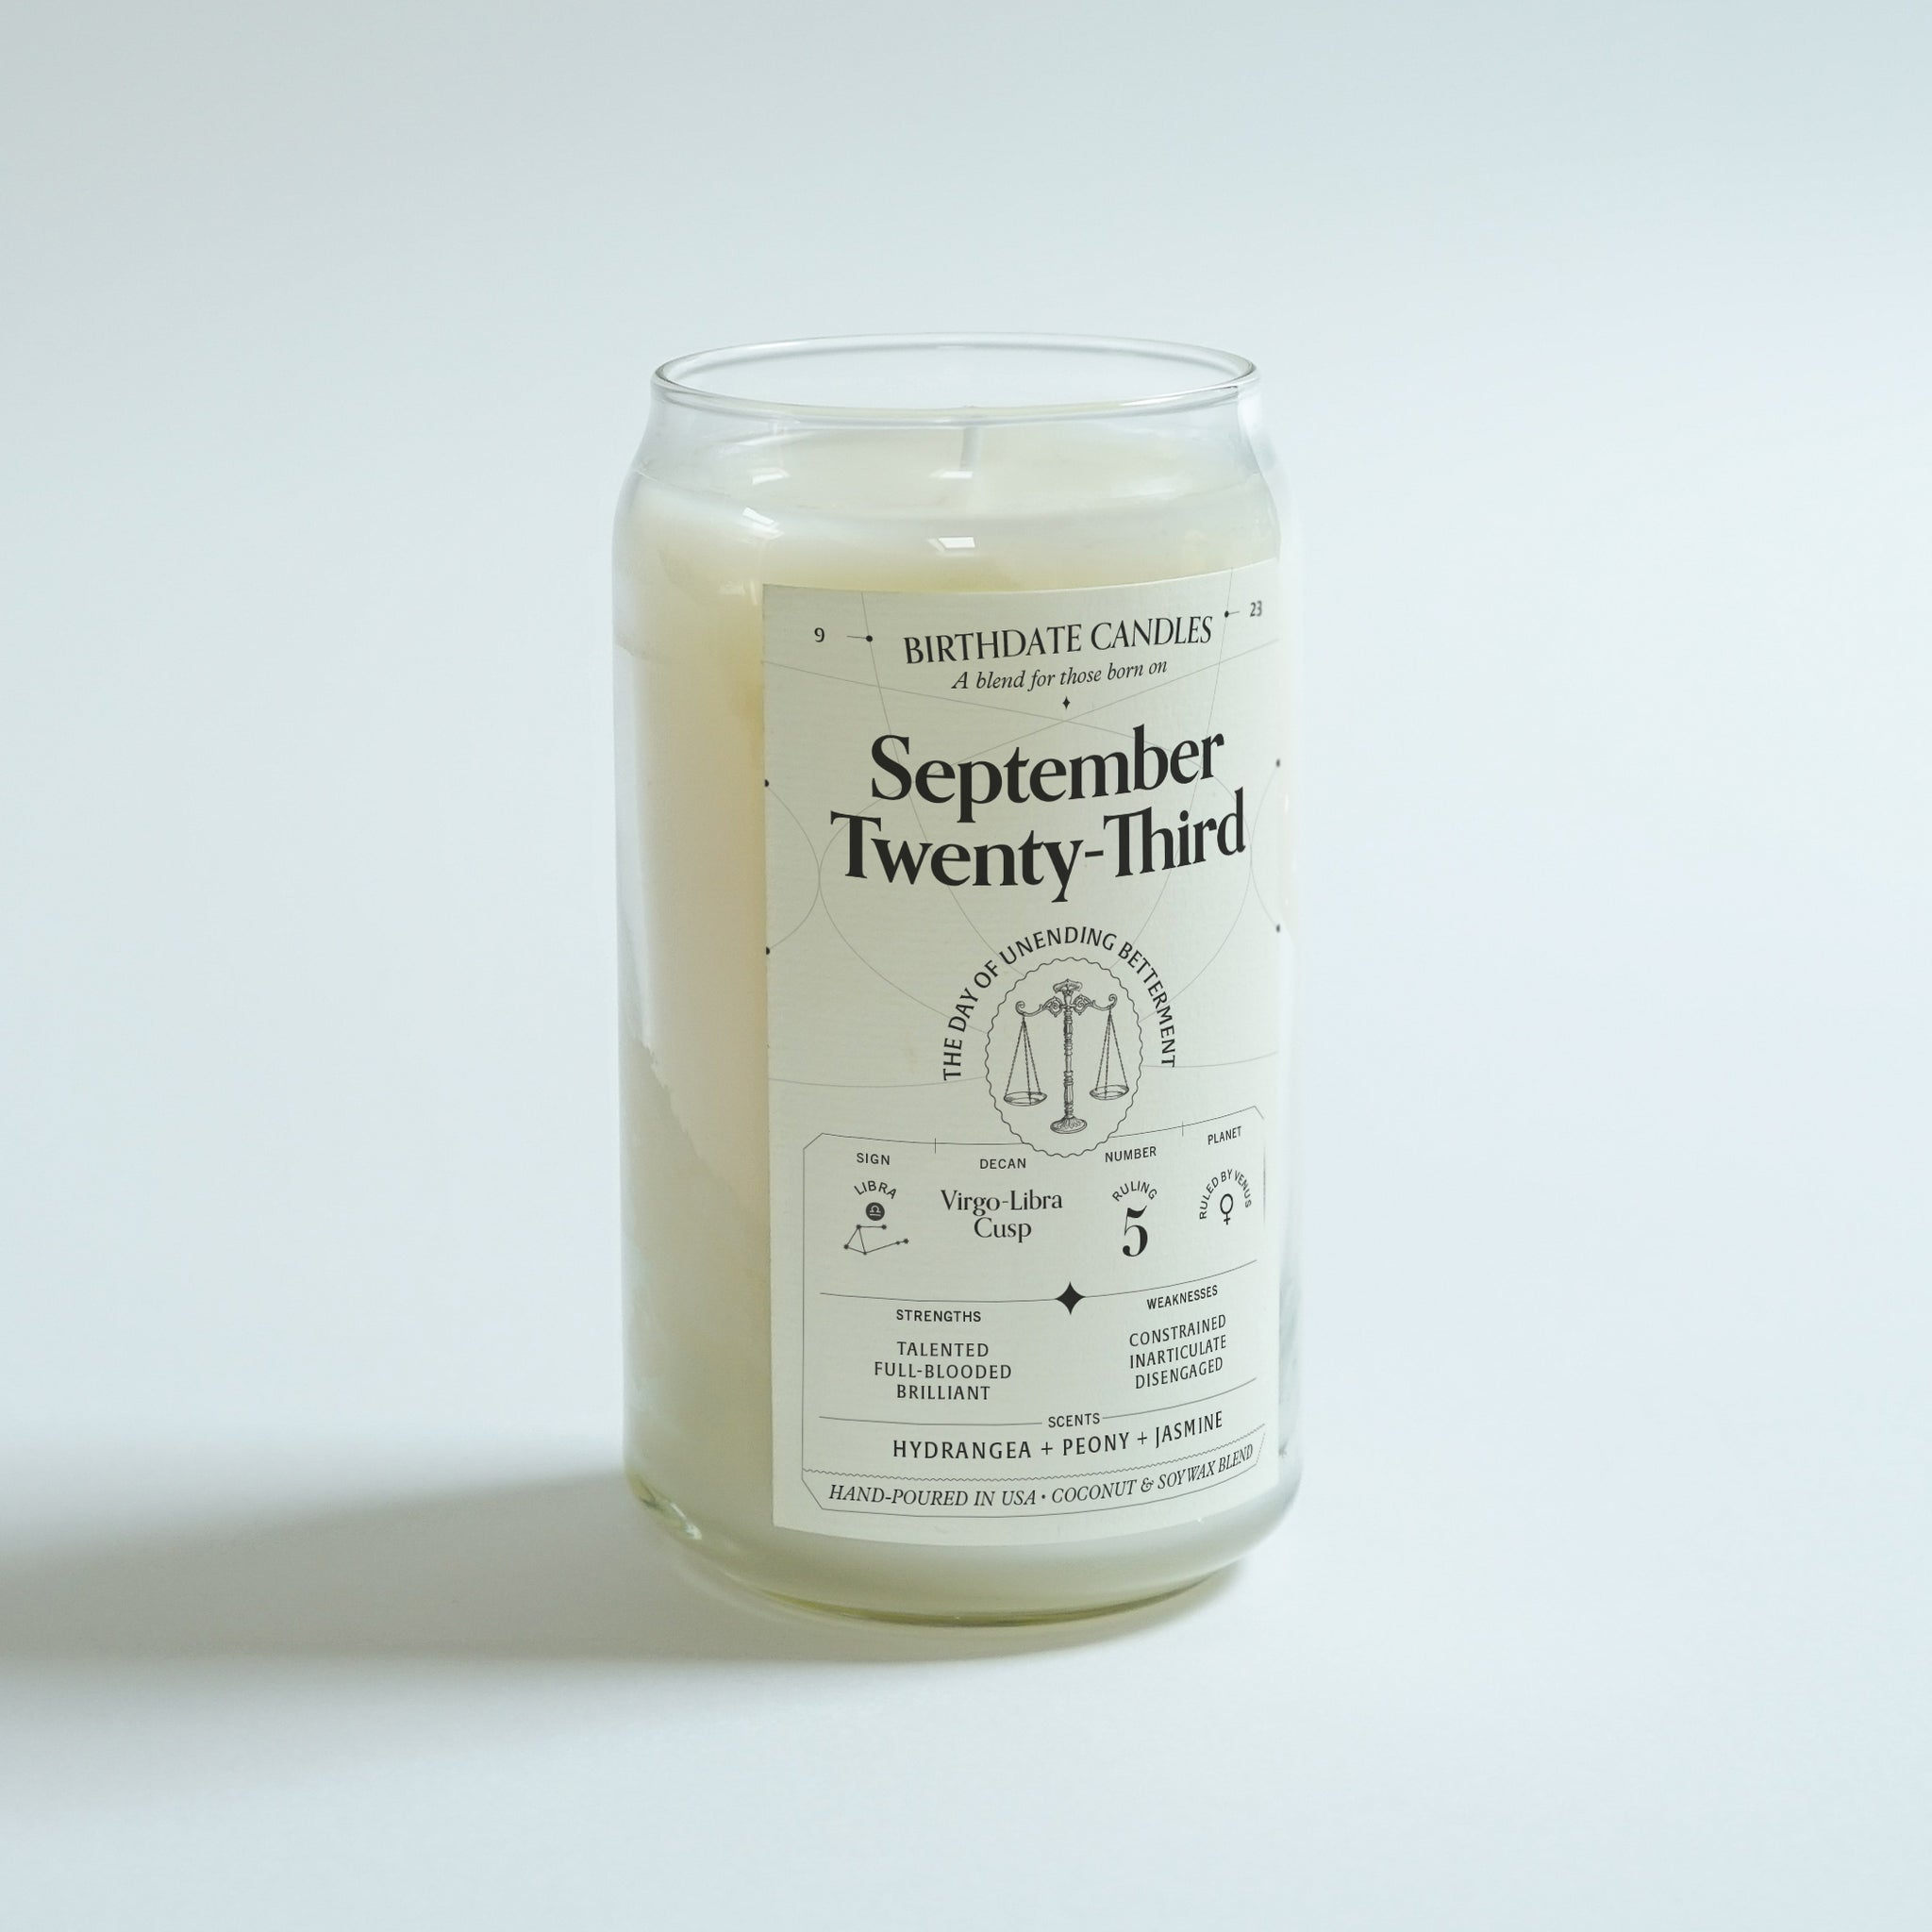 The September Twenty-Third Candle